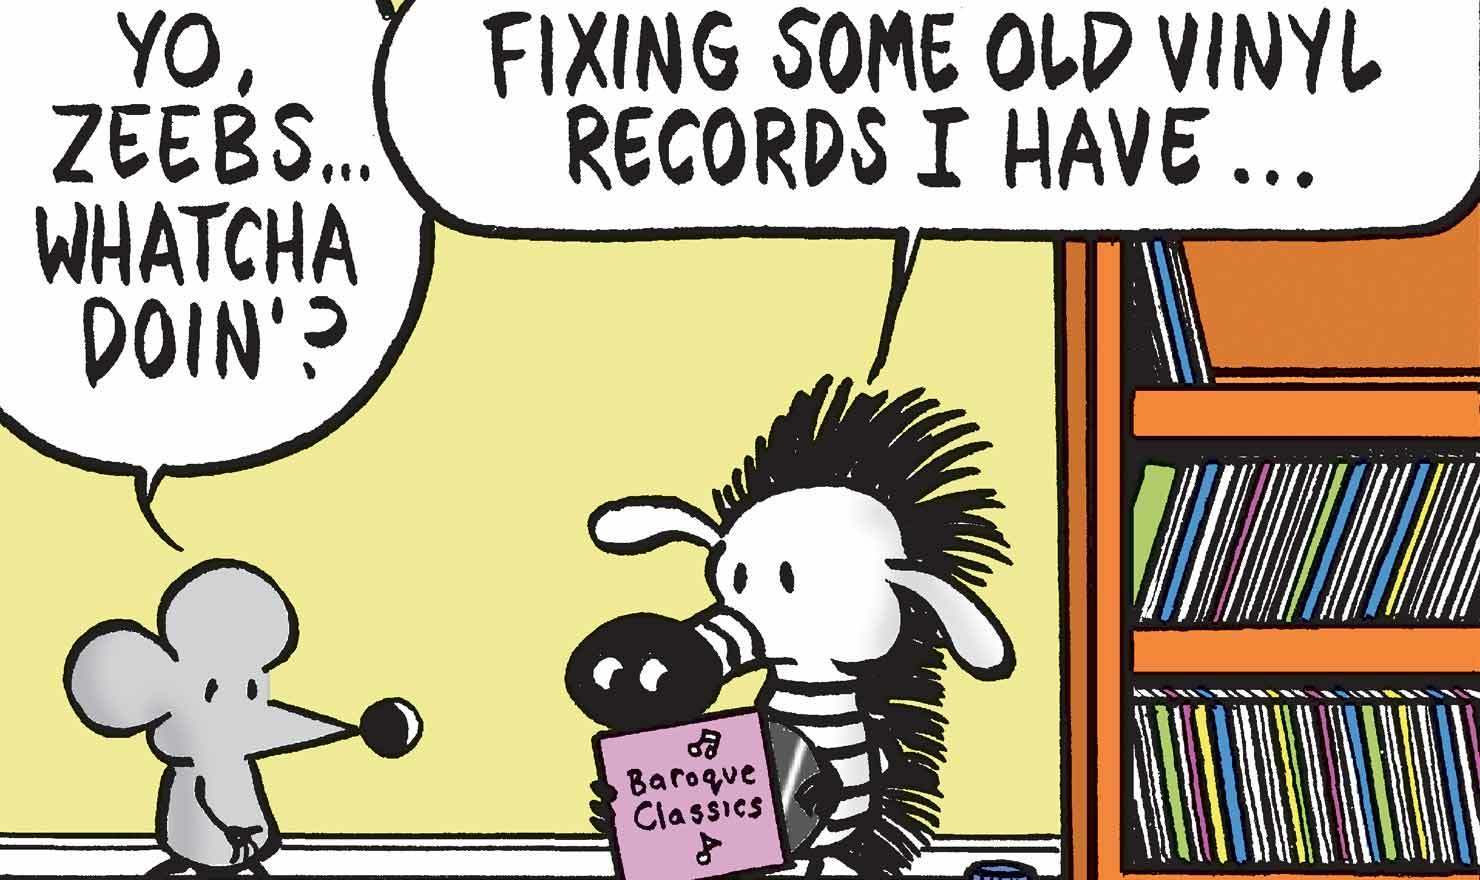 Give These Comics A Spin On Vinyl Record Day